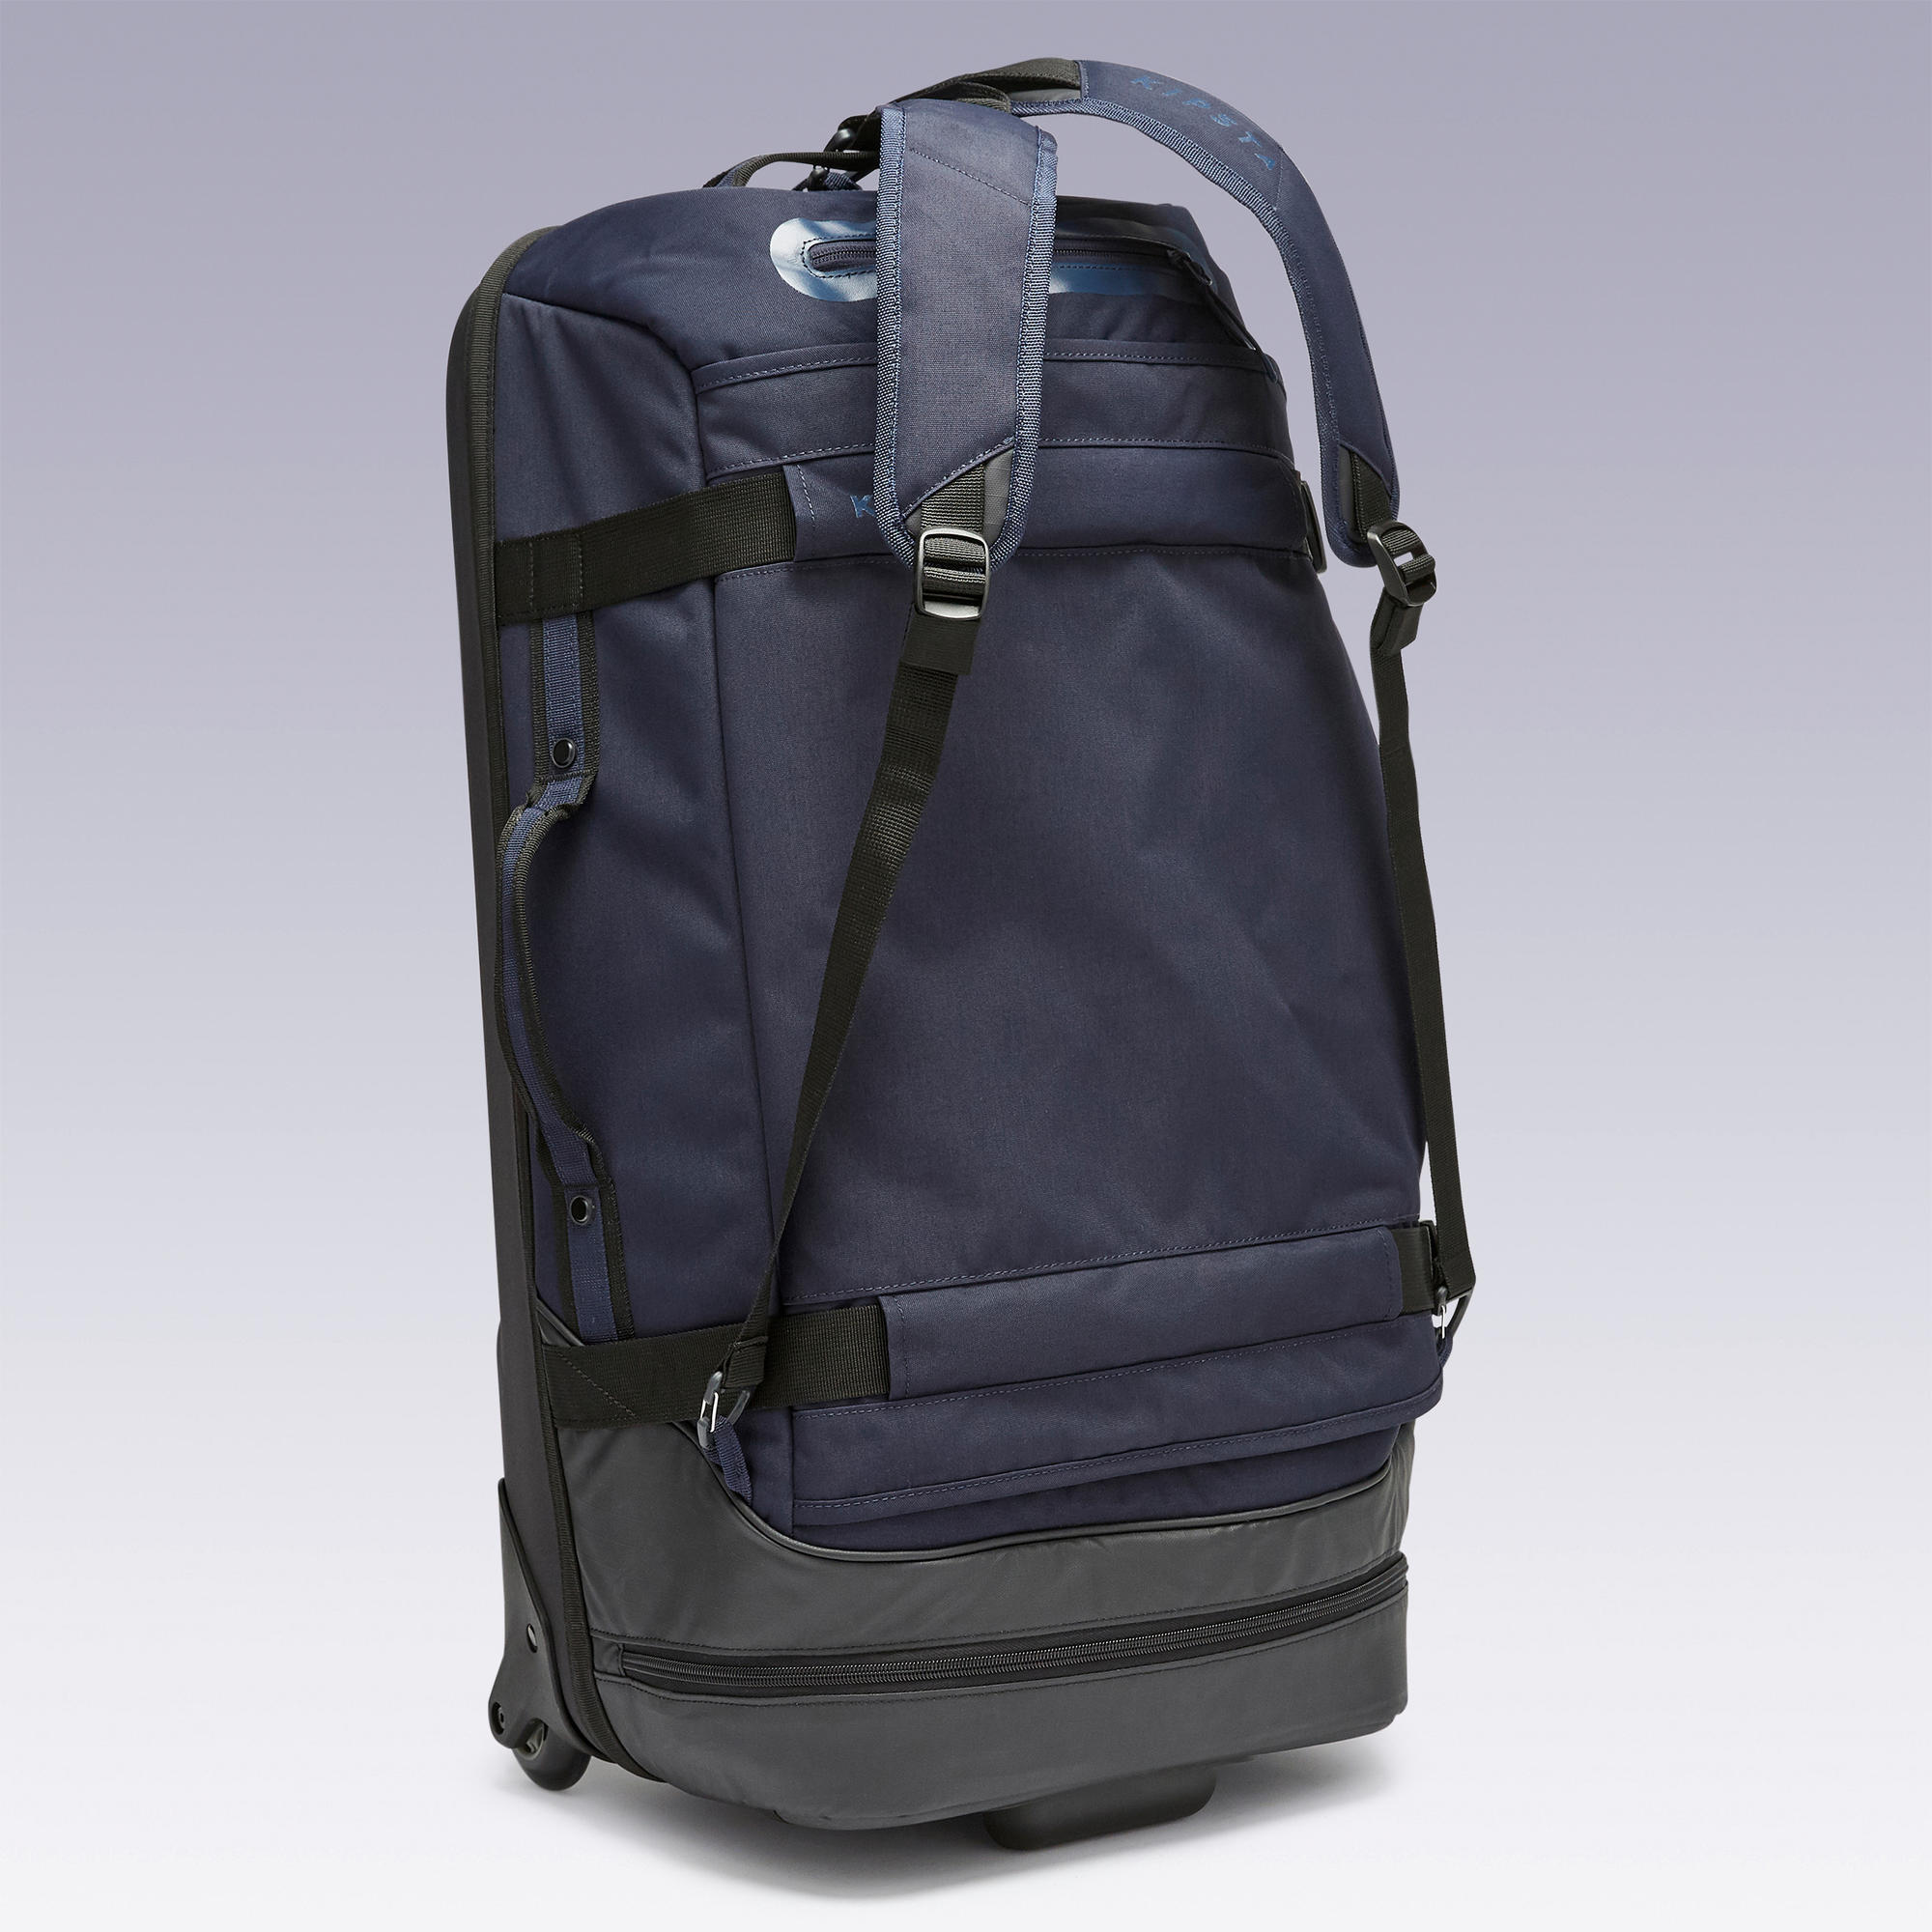 sac a roulettes trolley intensif 65 litres